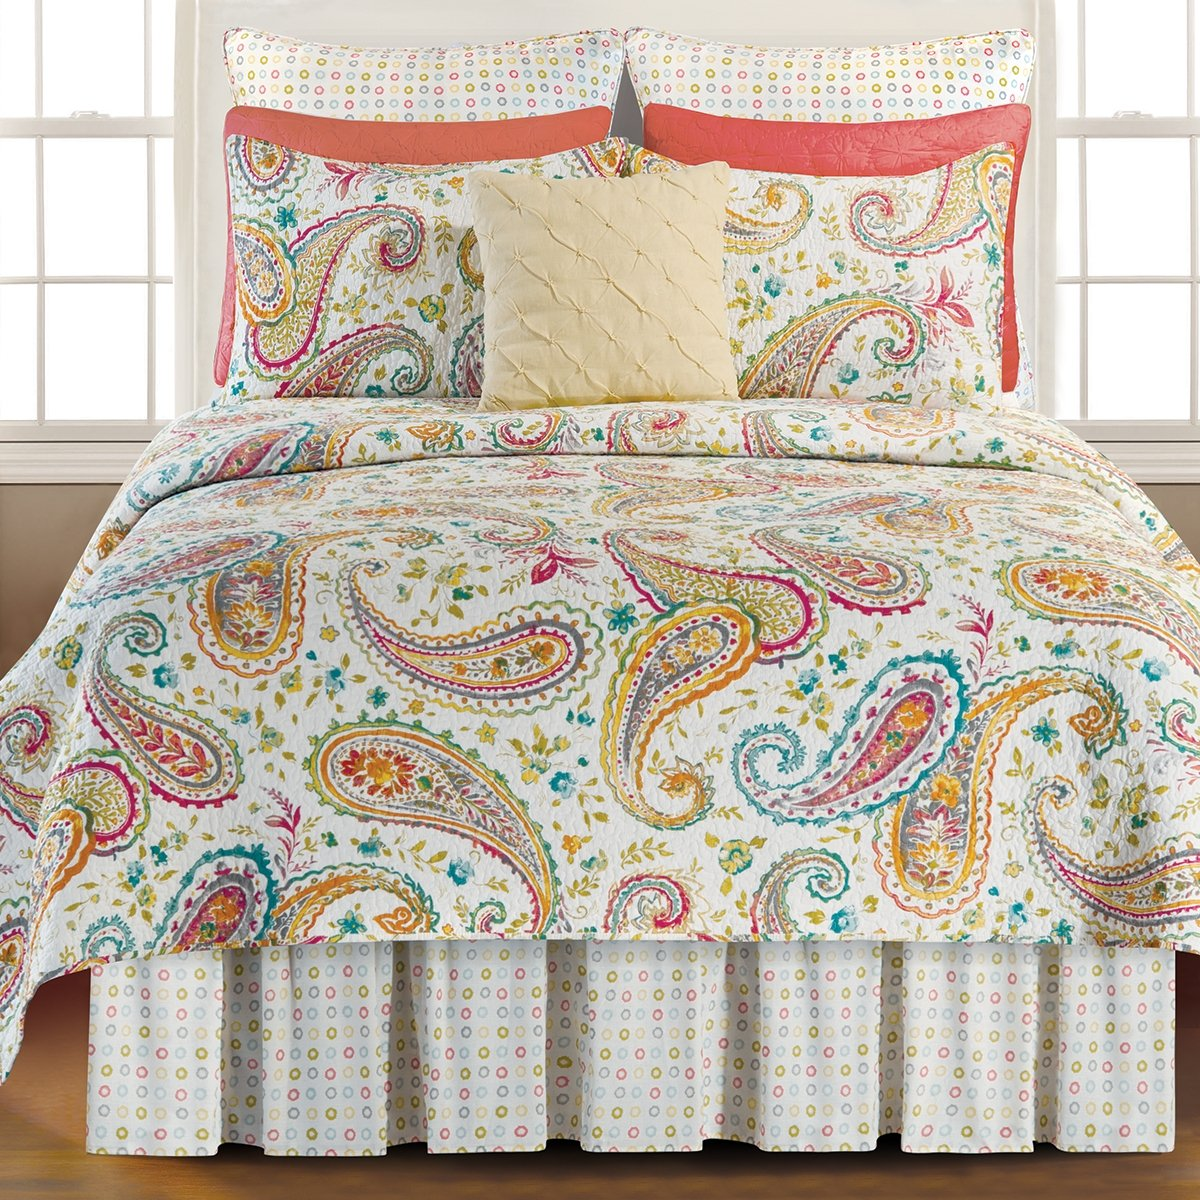 Adalynn King Quilt by C&F Home